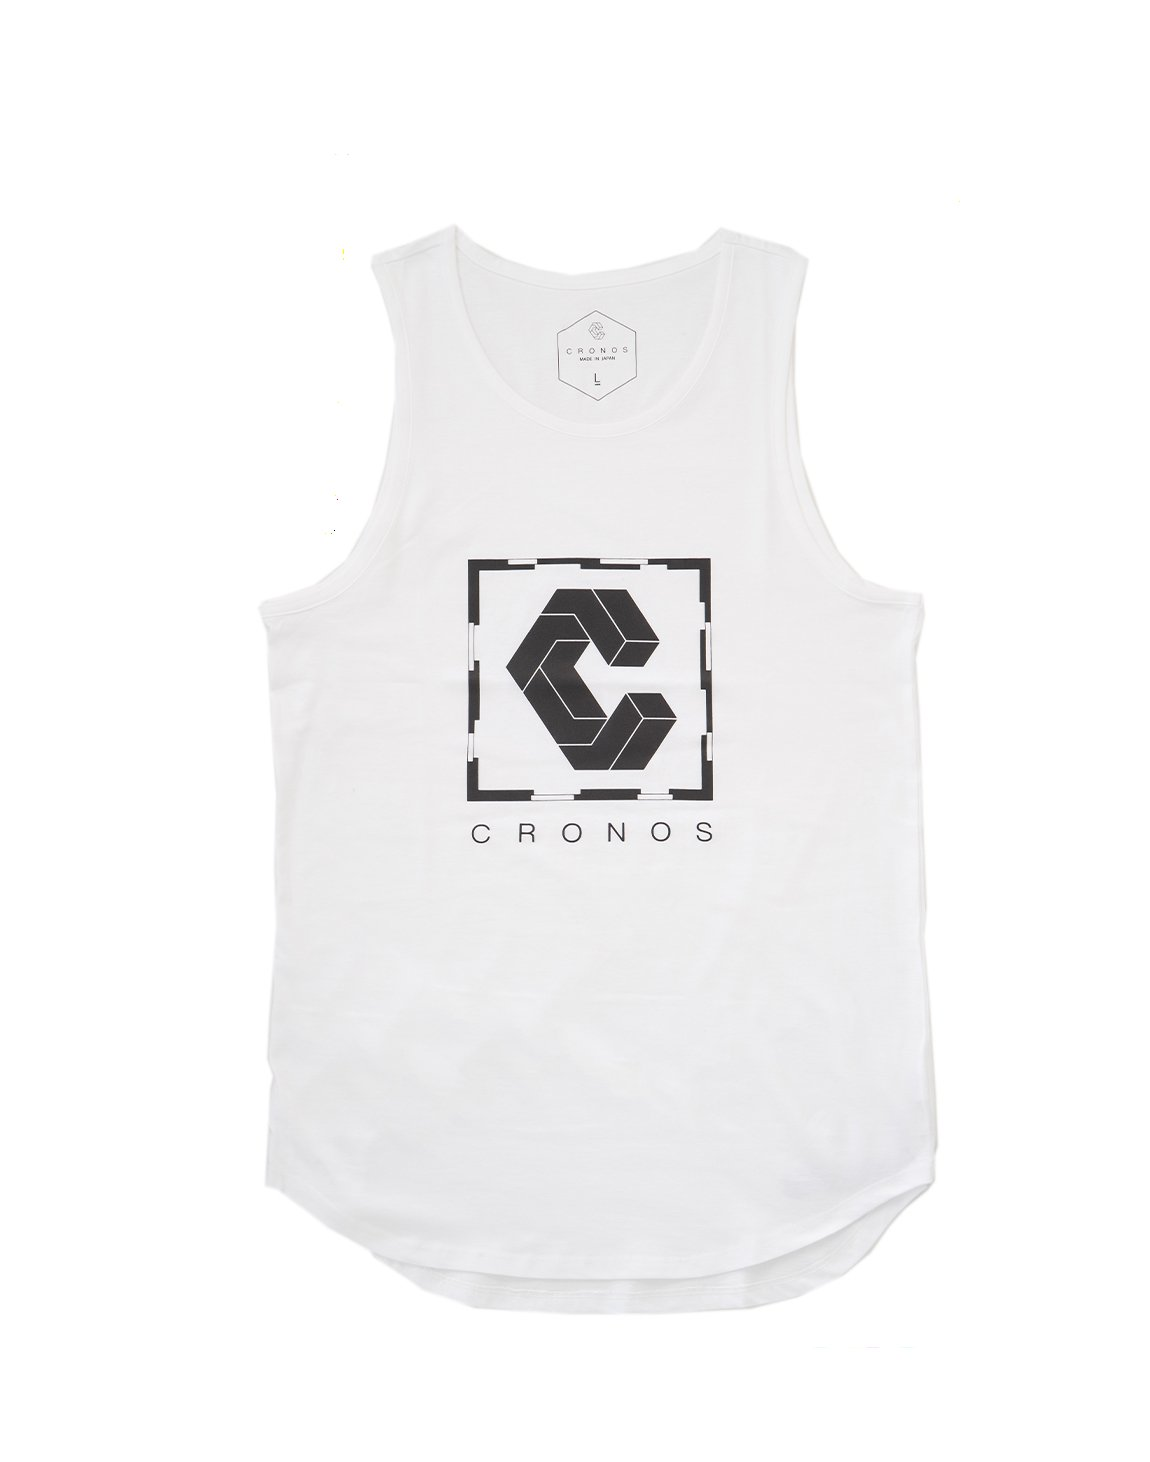 <img class='new_mark_img1' src='https://img.shop-pro.jp/img/new/icons1.gif' style='border:none;display:inline;margin:0px;padding:0px;width:auto;' />CRONOS SQUARE LOGO TANK TOP 【WHITE】